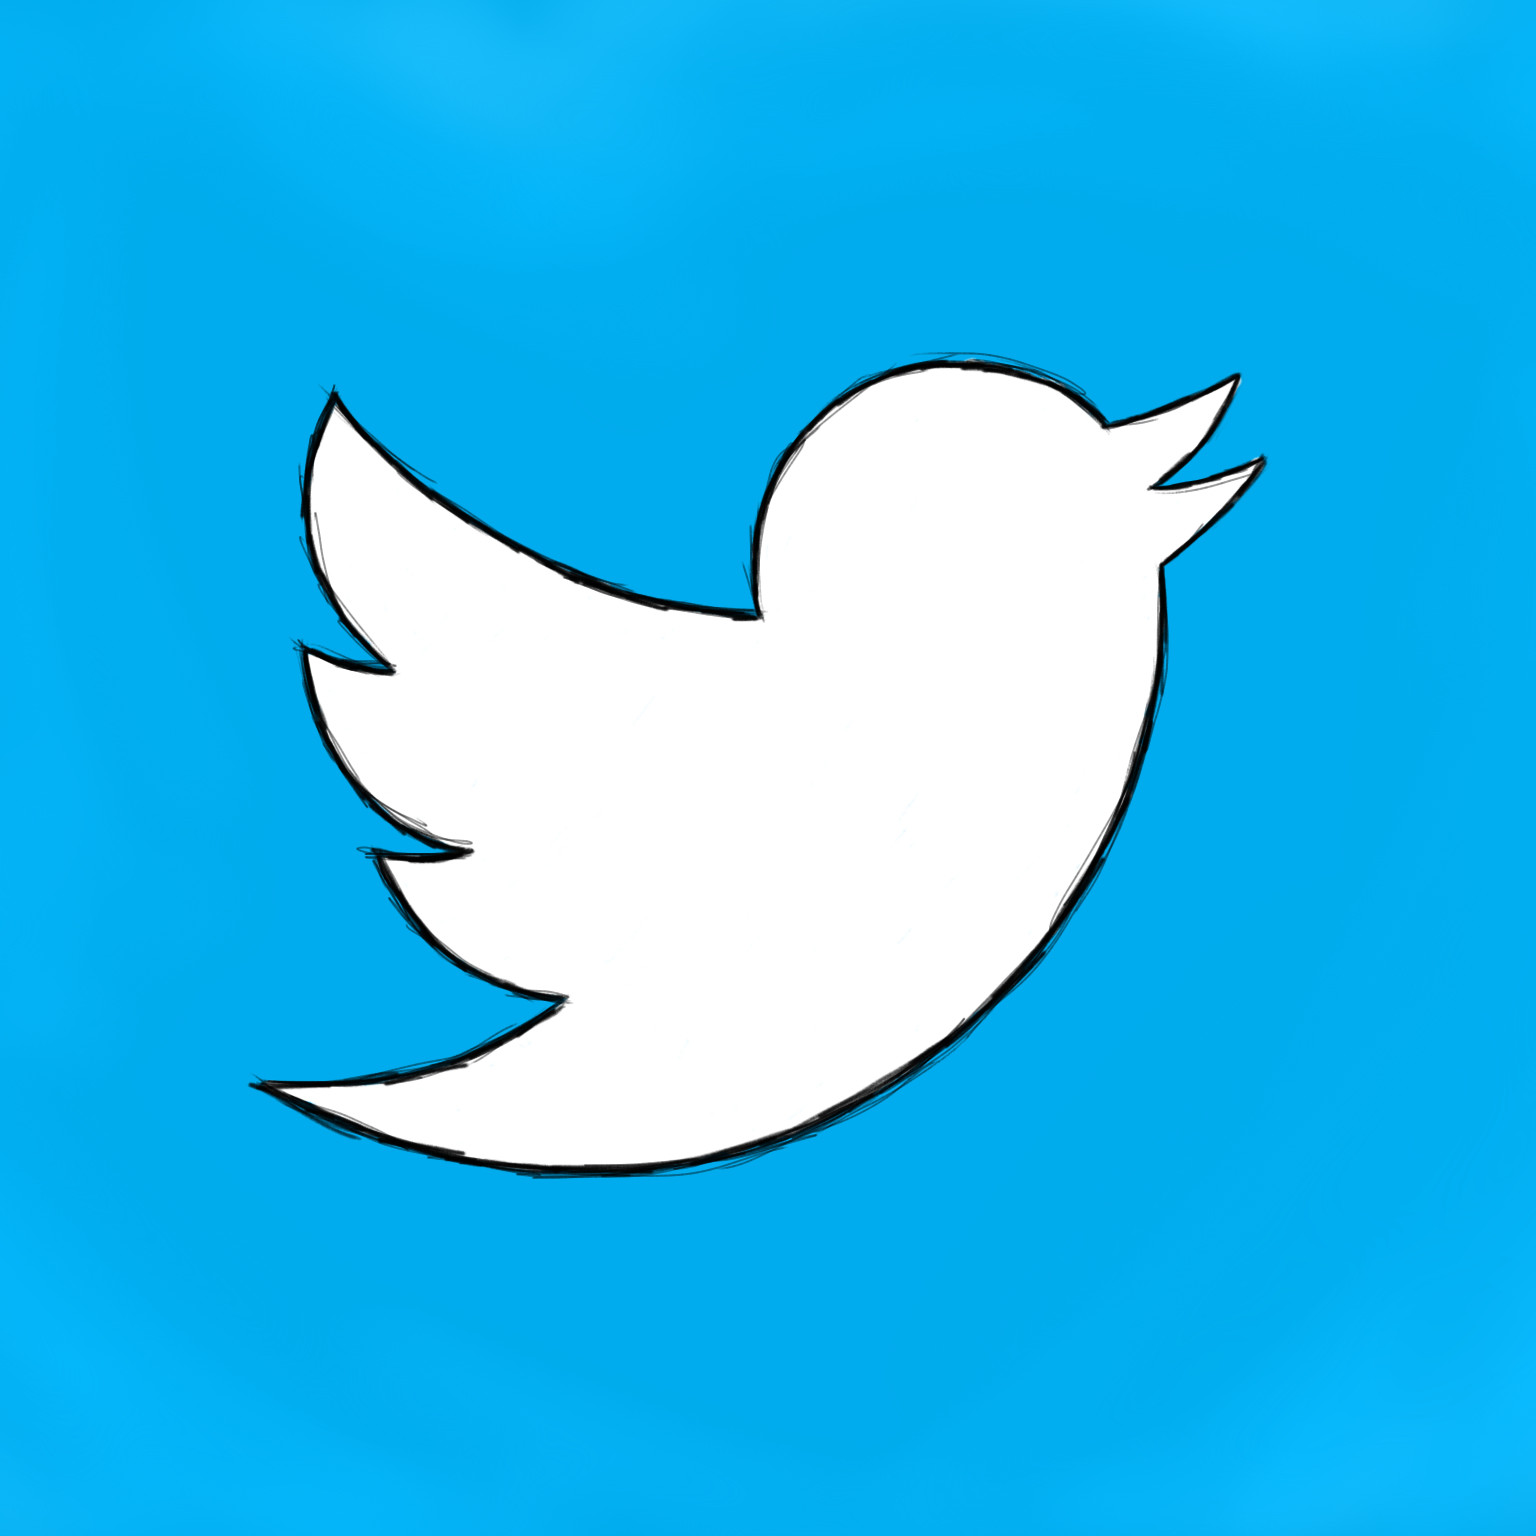 Twitter-Bird-Logo-Sketch-New-adapted-Image-by-Shawn-Campbell-CC-BY-2.0-via-Flickr